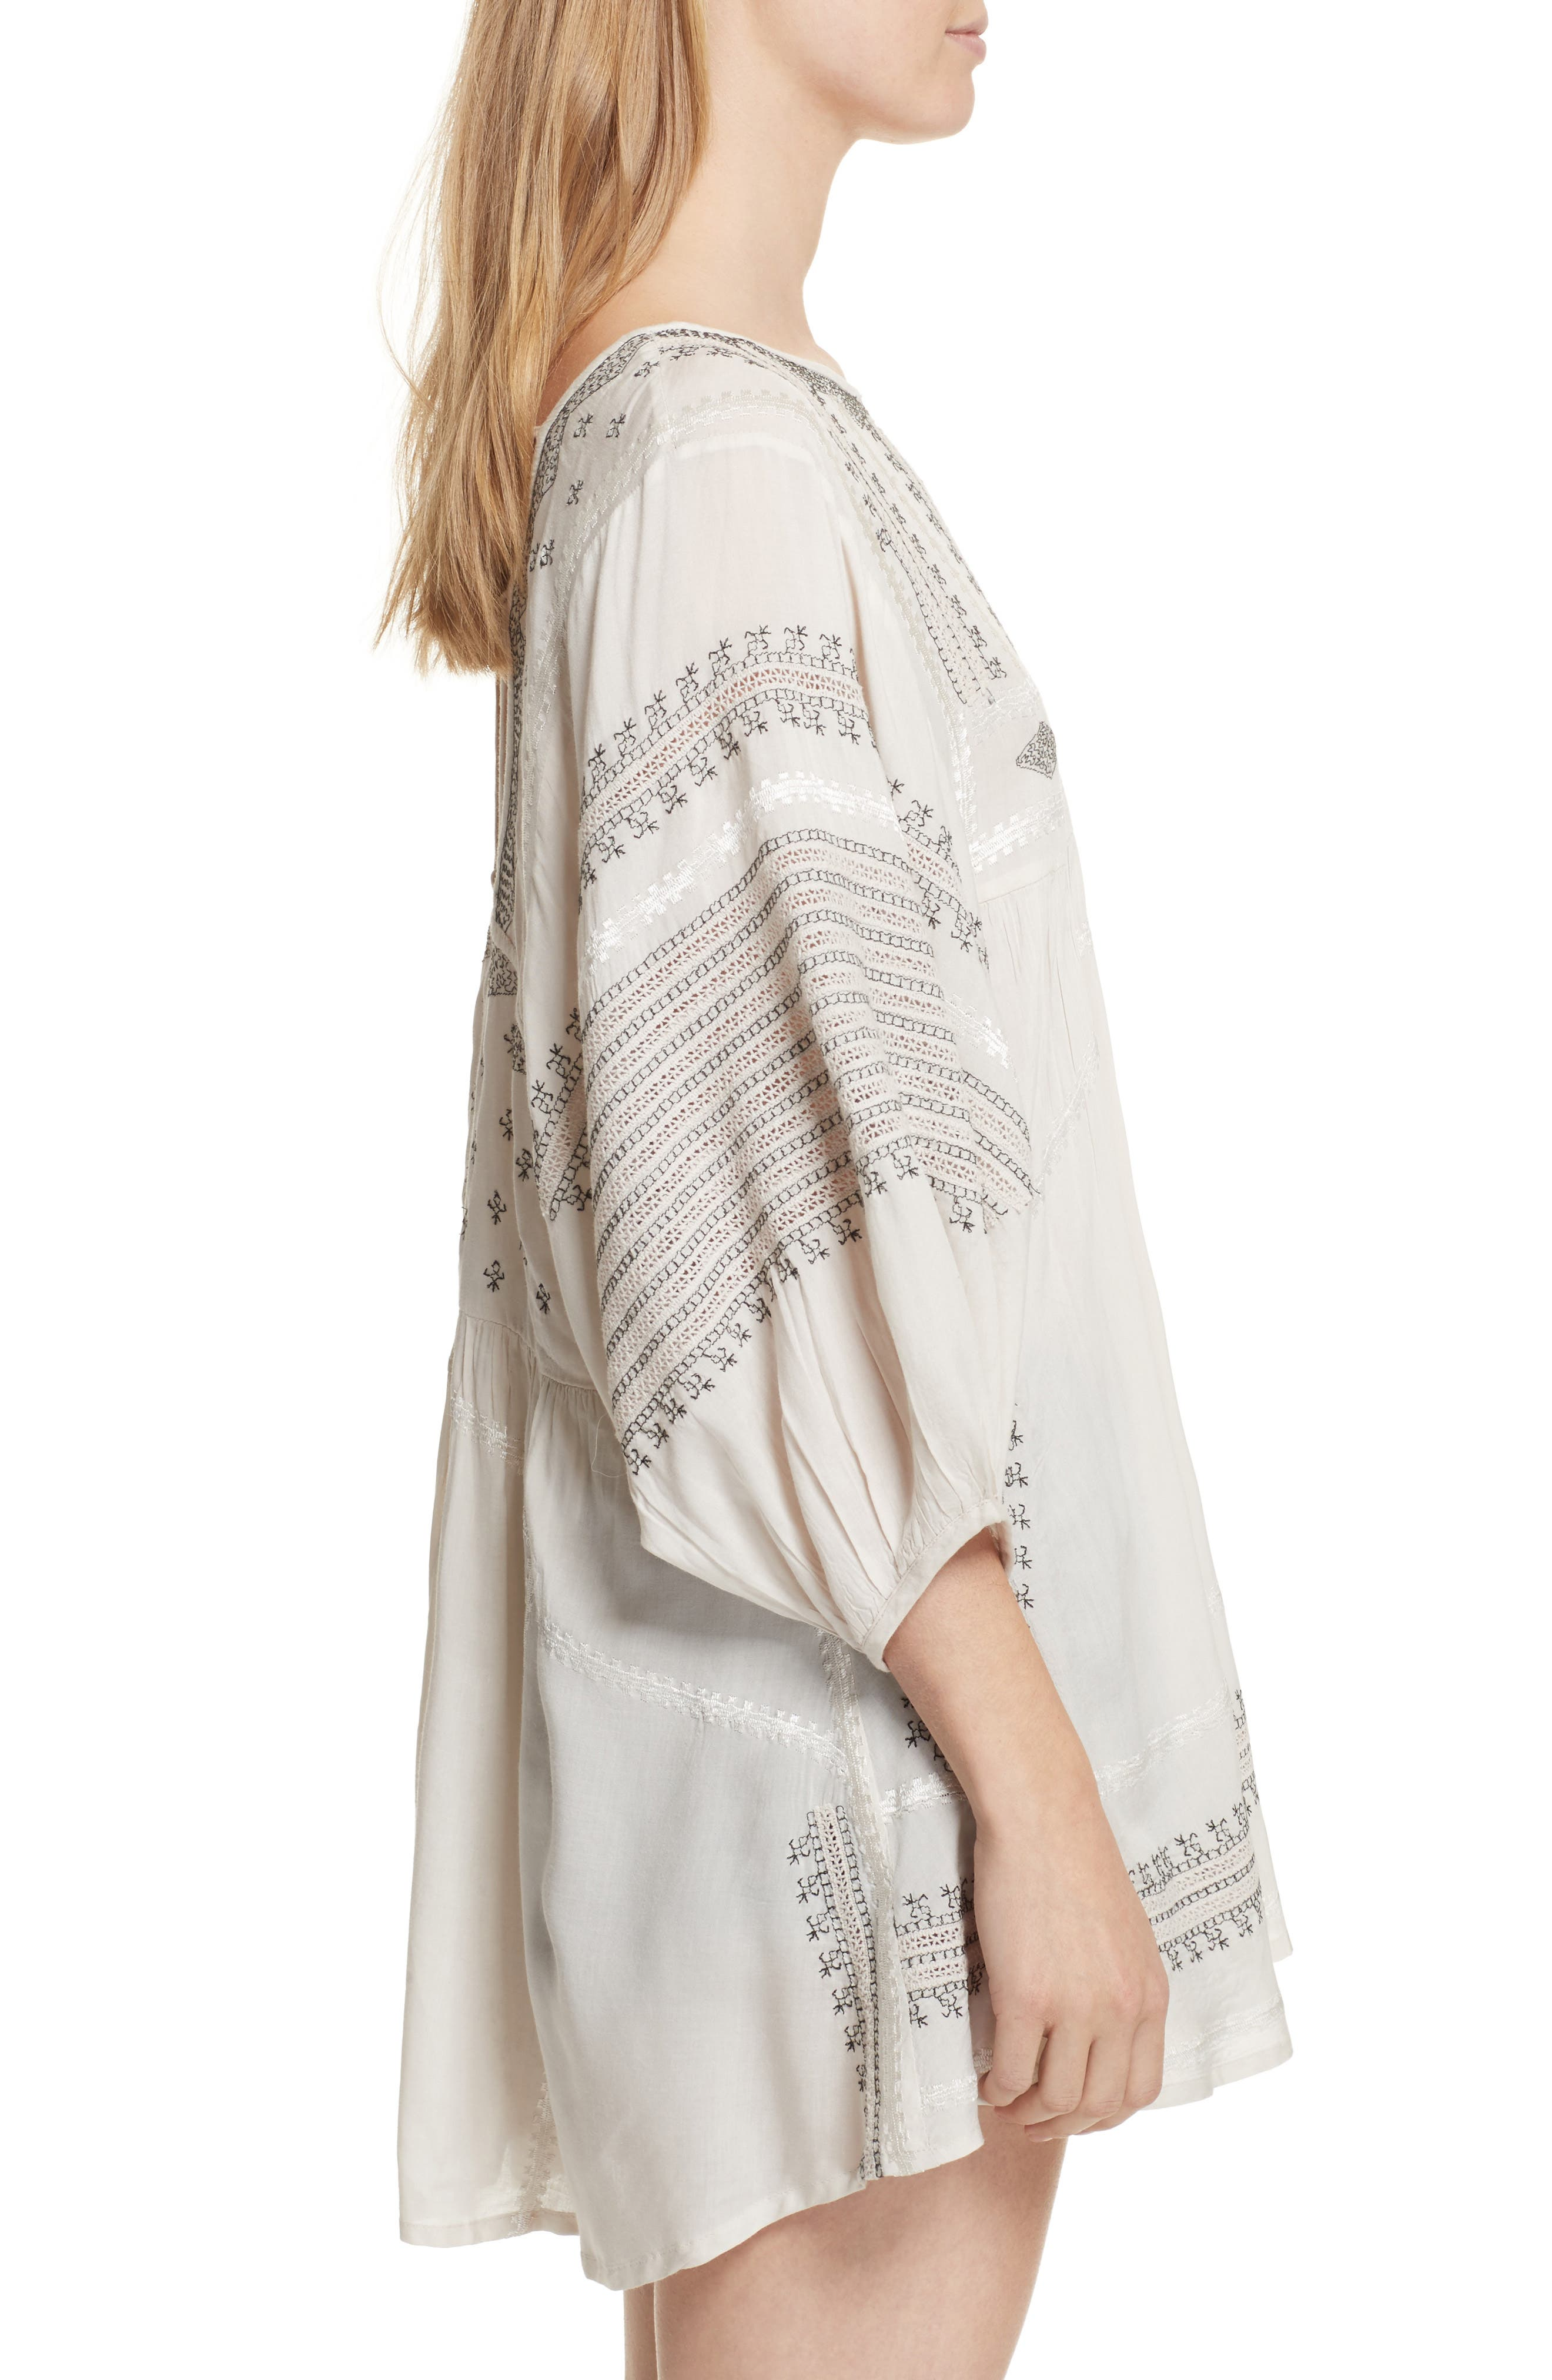 Wild One Embroidered Top,                             Alternate thumbnail 3, color,                             Ivory